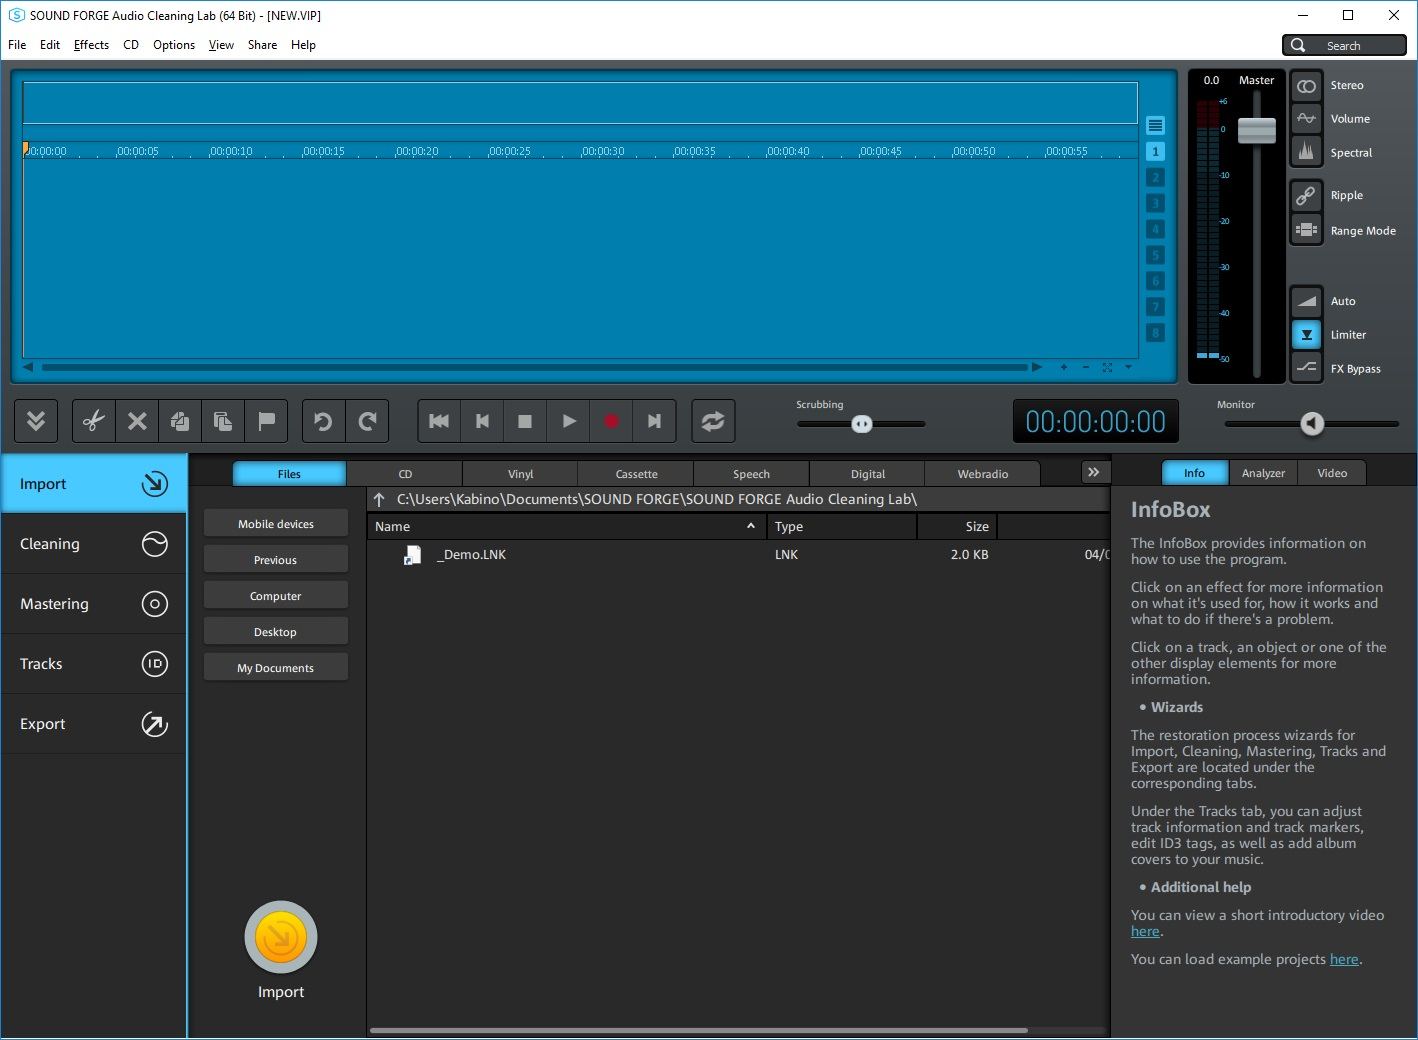 MAGIX SOUND FORGE Audio Cleaning Lab v24.0.0.8 - ENG